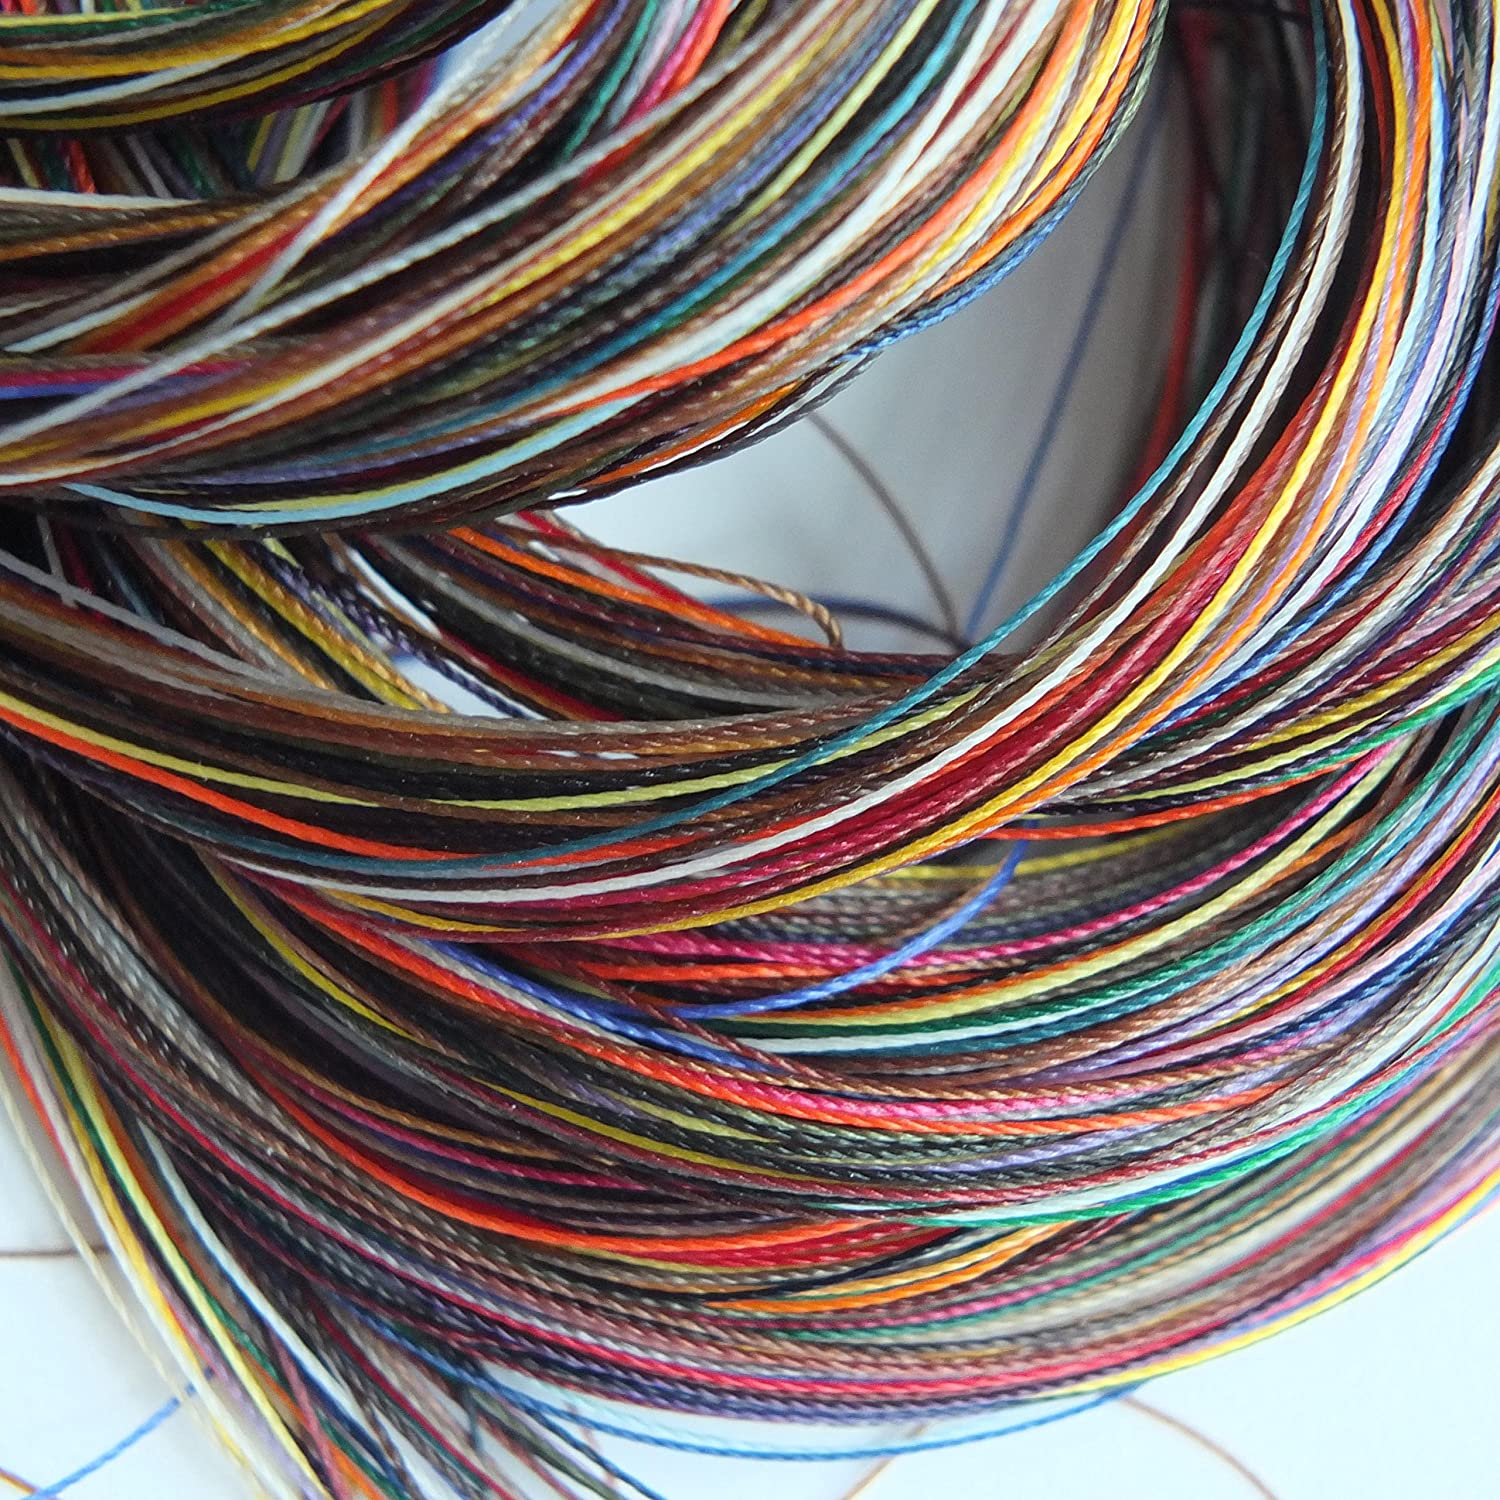 Beading Bead Now on sale Stringing Cord Thread Size Pack #2 Sale Special Price Colors 3 of 44